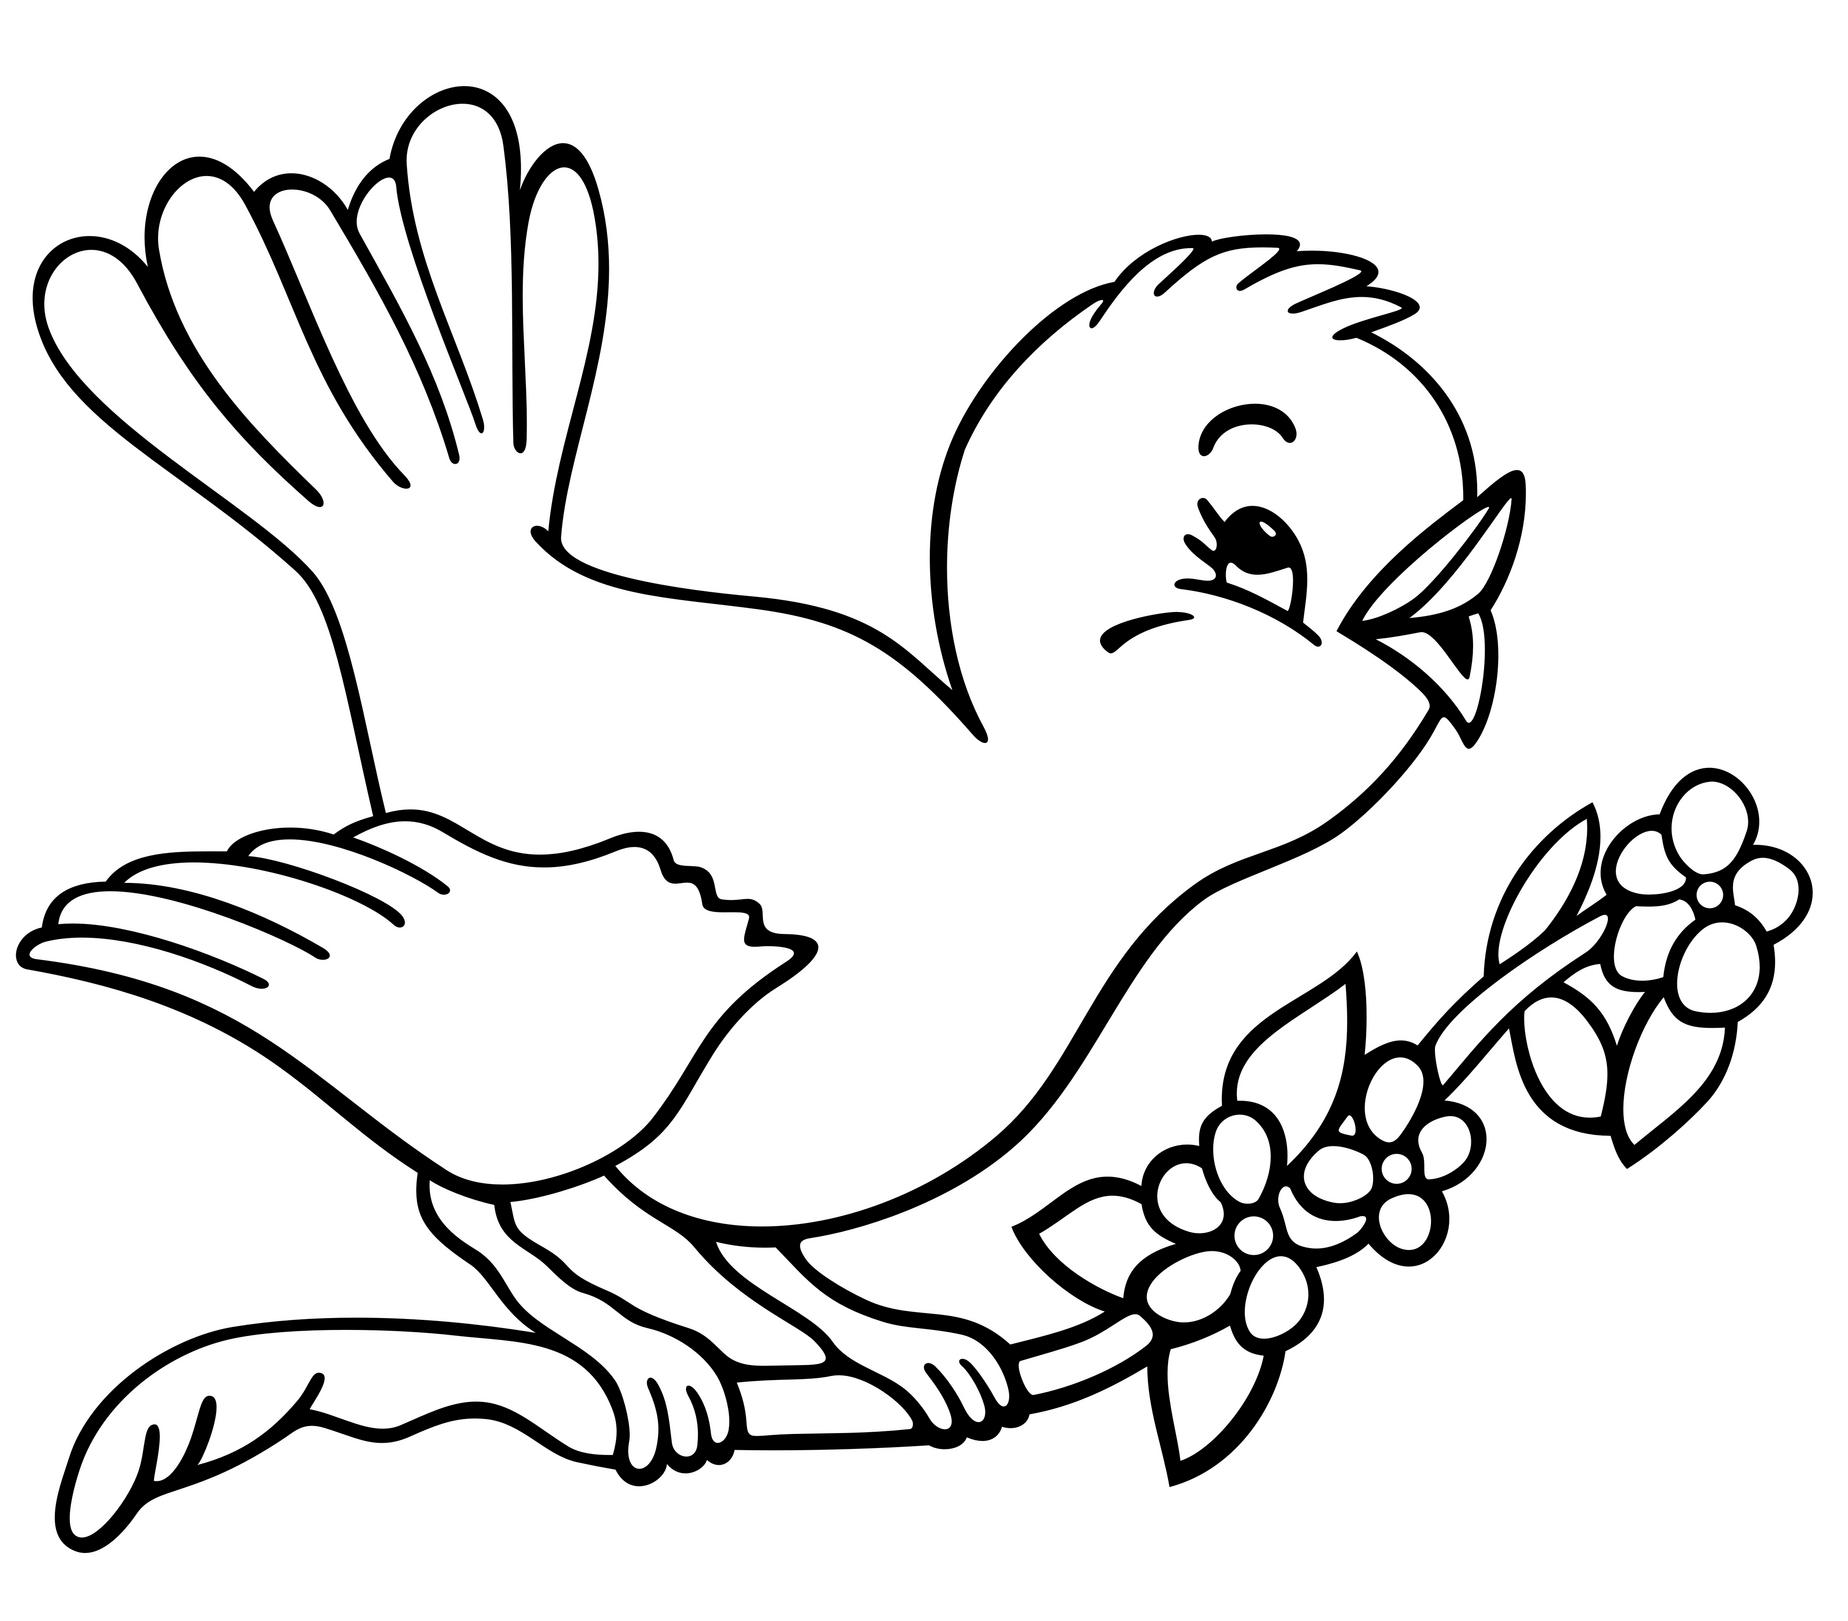 Birds Coloring Pages Knowing Kind Birds Name besides Magical Jungle Colouring Book Johanna Basford moreover Mandala Coloring Books 20 Coloring Books With Brilliant Kaleidoscope Designs likewise Peacock further Cute Frog Coloring Pages. on christmas tree out of books